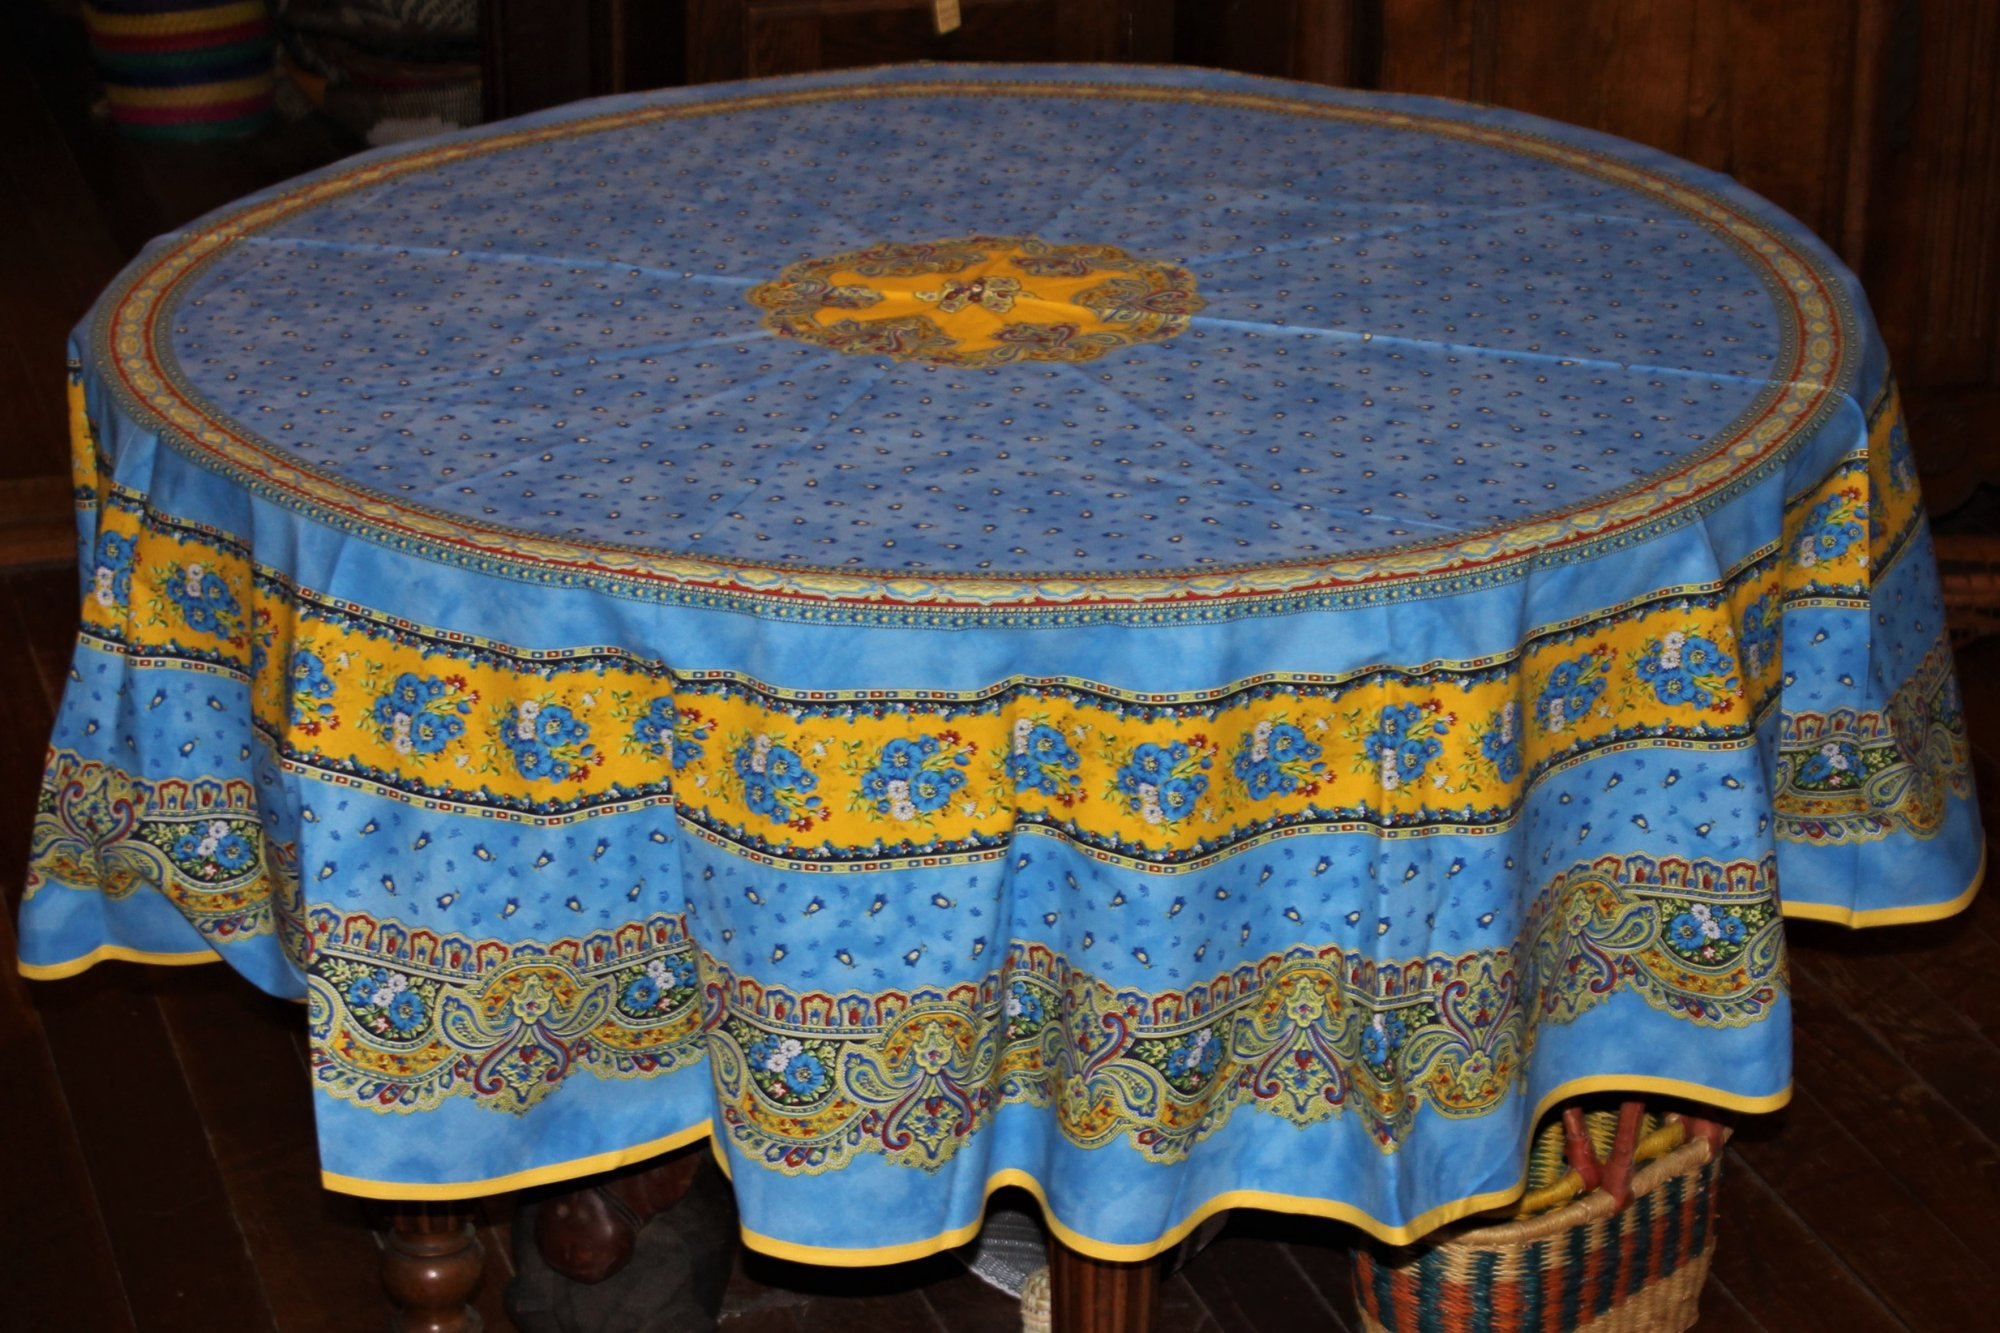 70 French Acrylic-Coated Round Tablecloth Tradition (Blue)